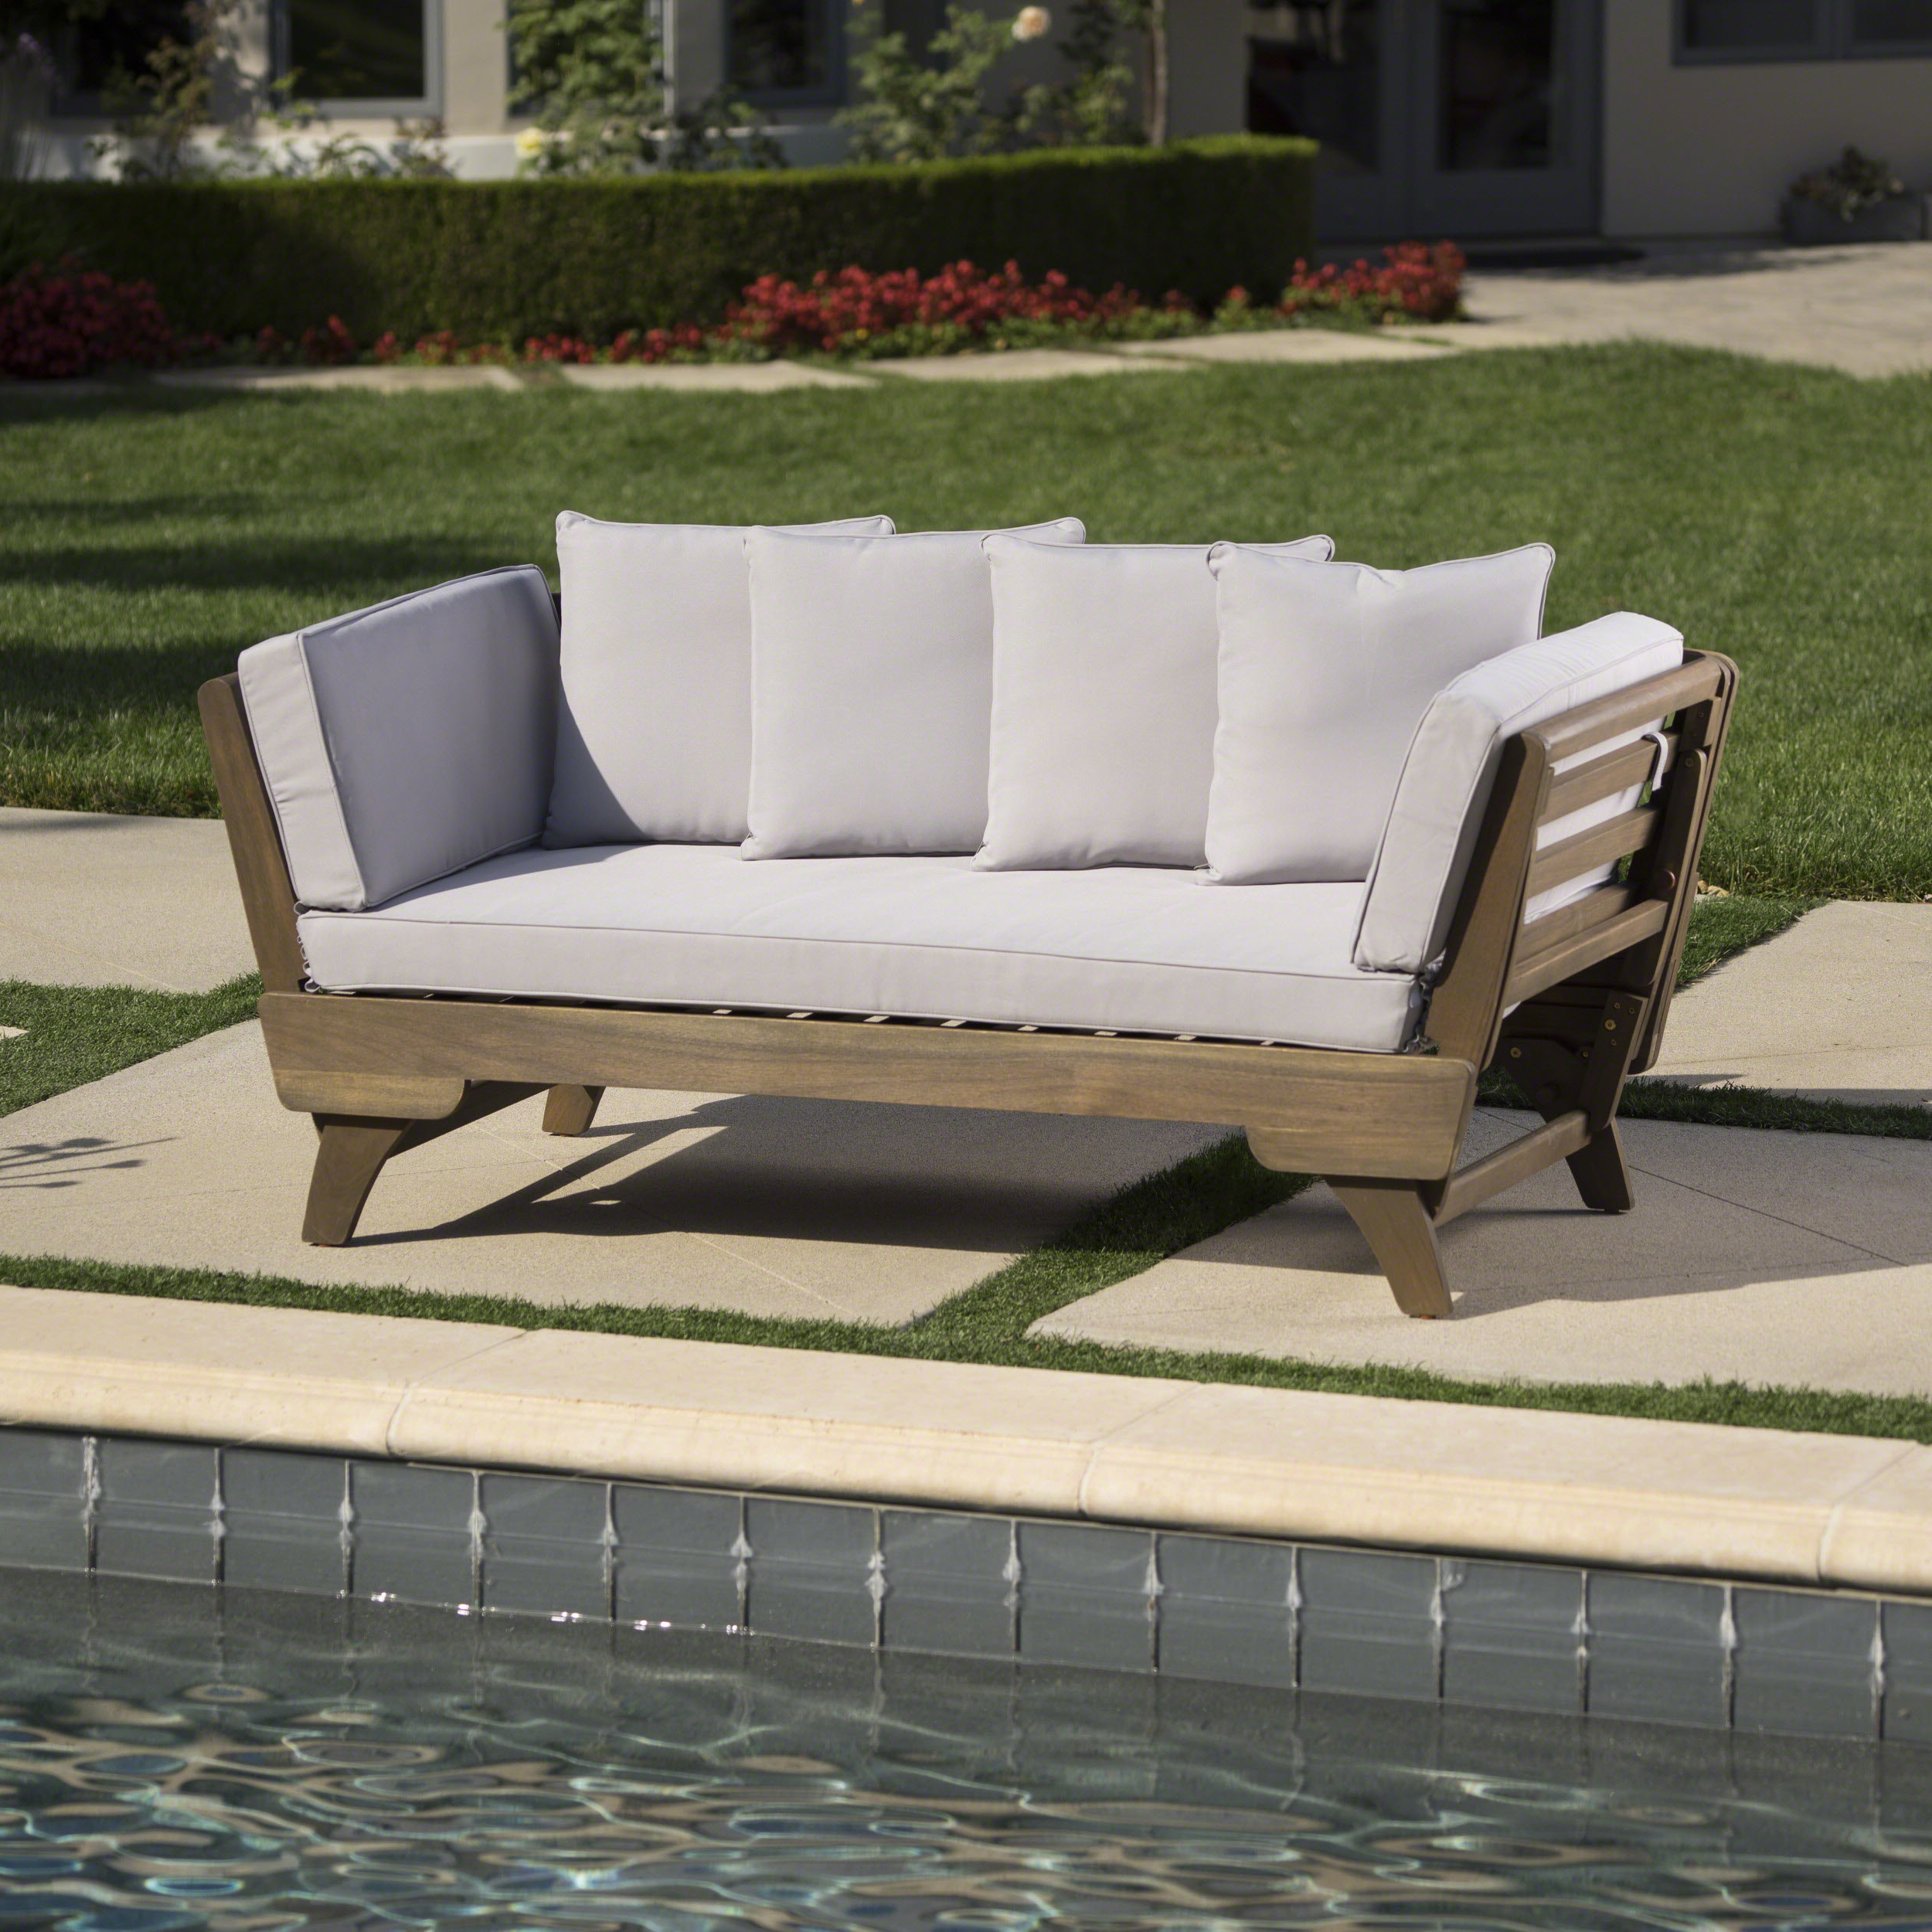 Mansfield Teak Loveseats With Cushion Inside 2019 Ellanti Teak Patio Daybed With Cushions (View 9 of 20)